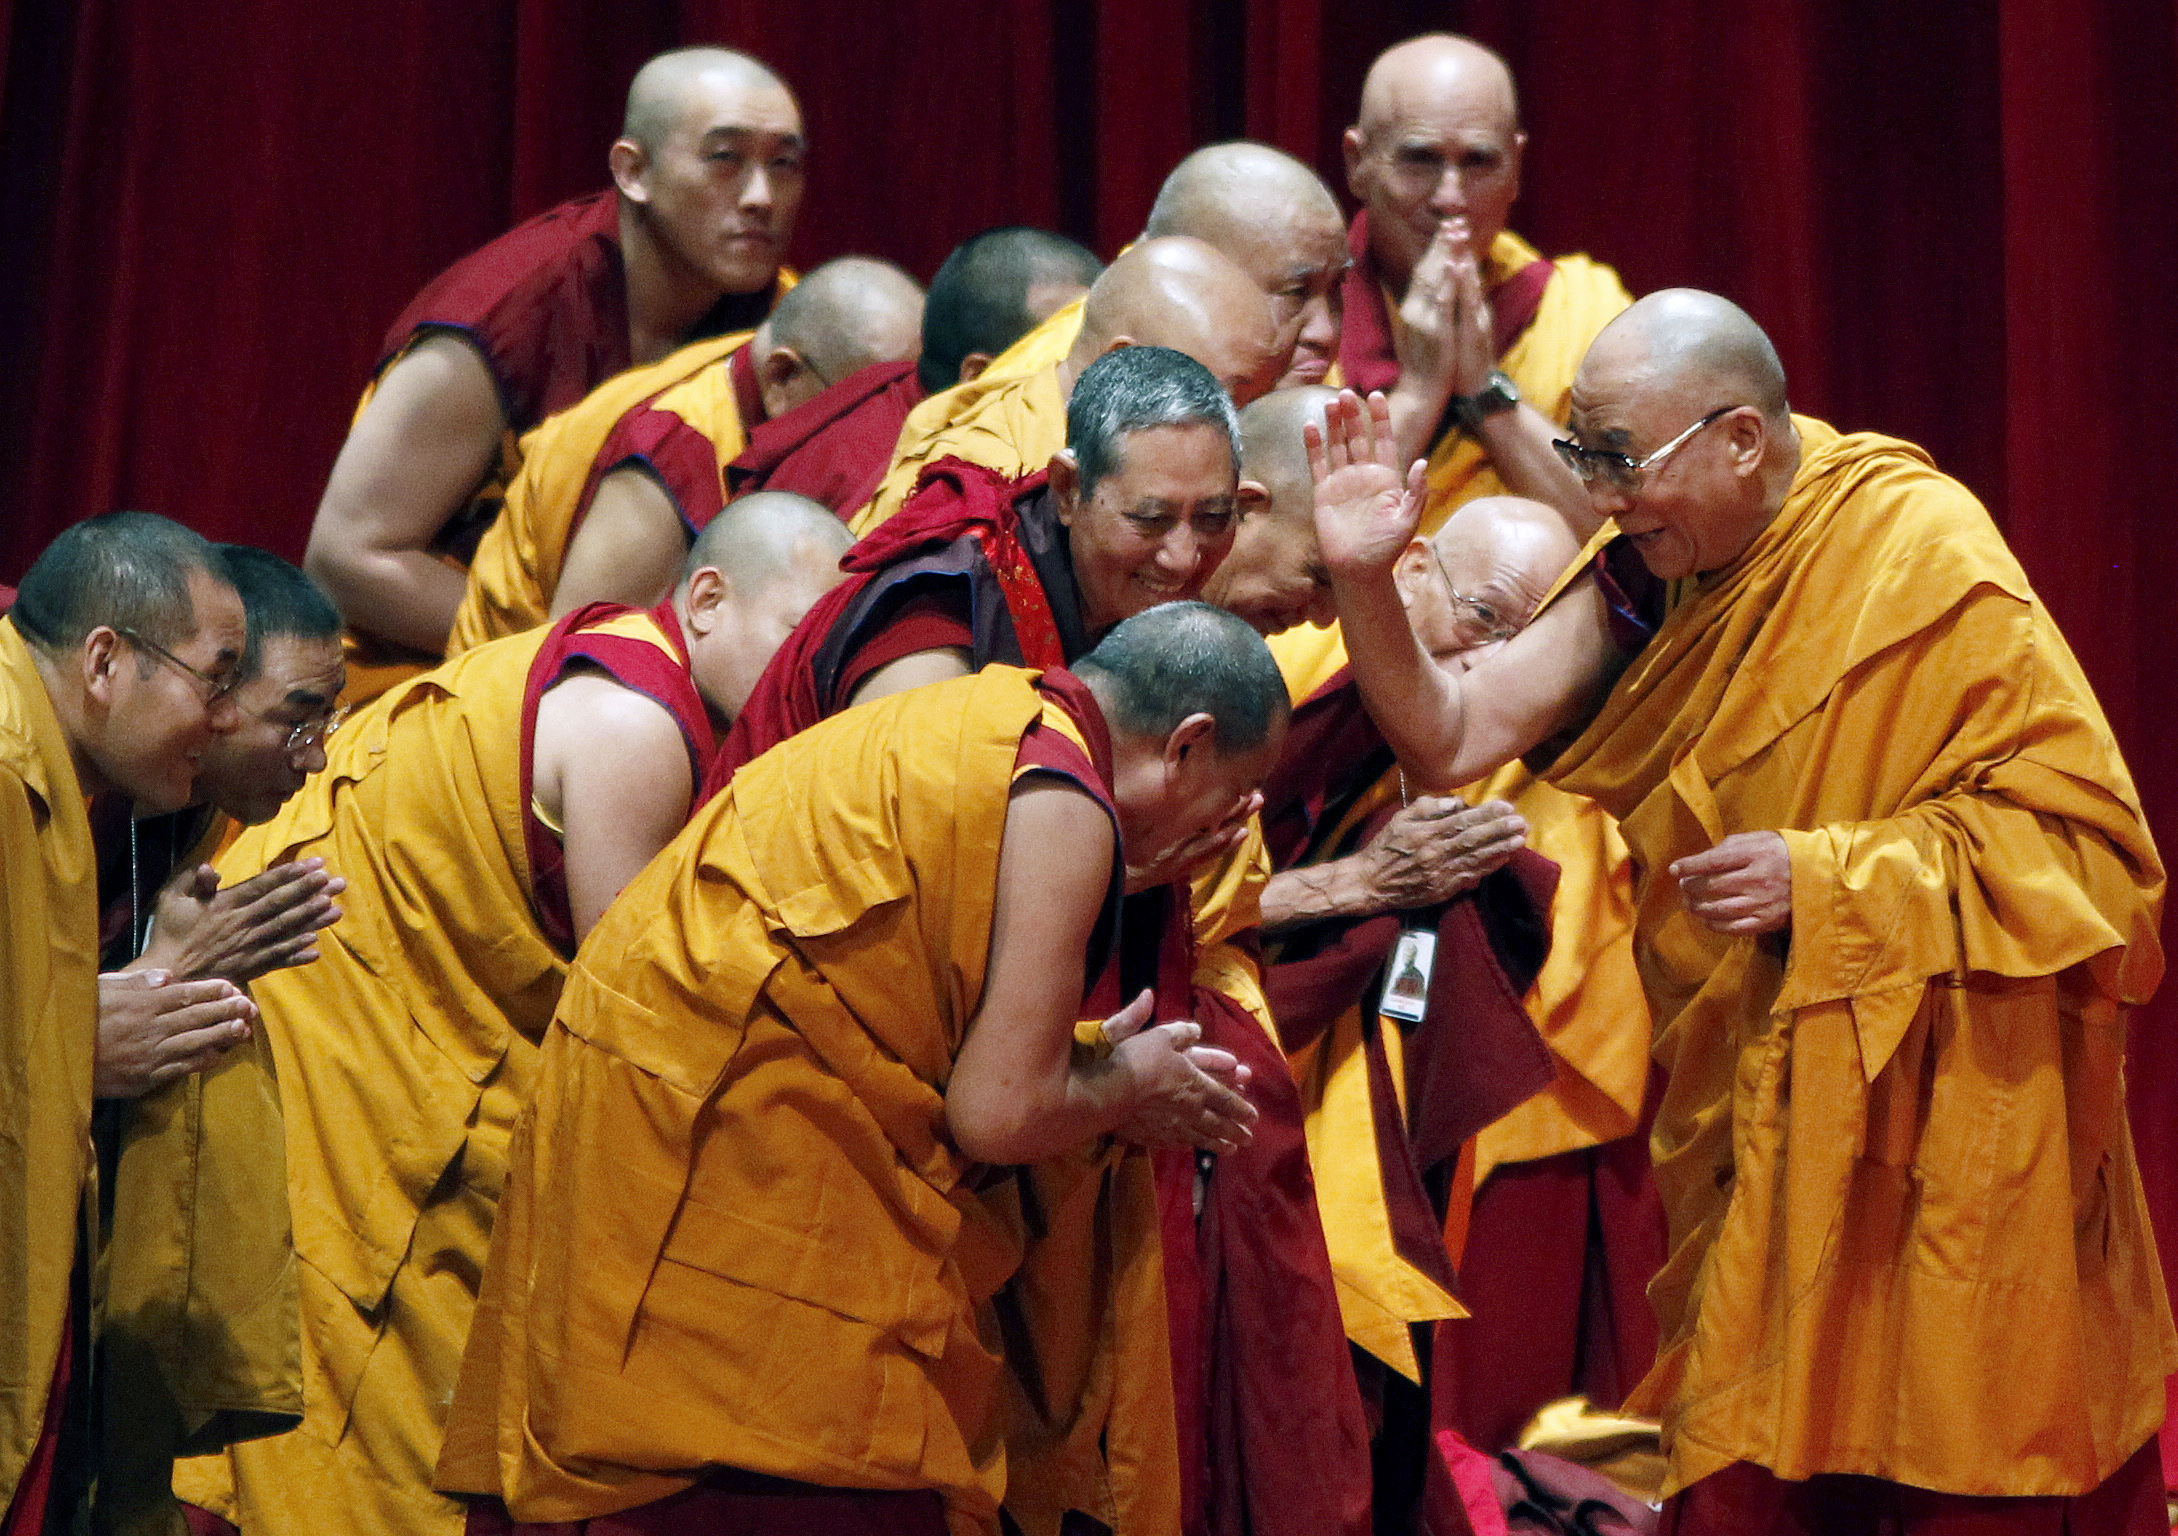 The Dalai Lama greets Buddhist monks before a teaching session at Radio City Music Hall in New York on May 20, 2010.